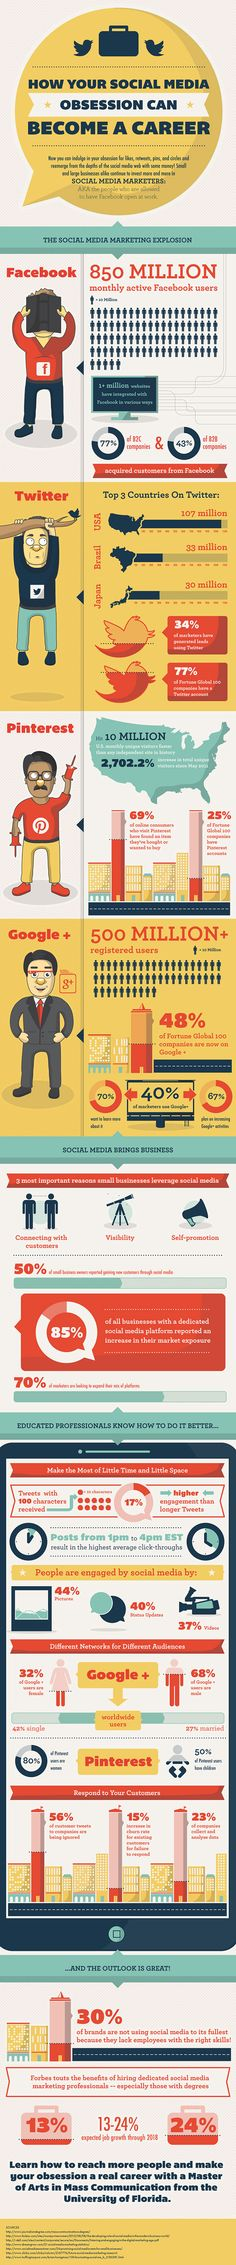 Make Your Social Media Obsession Your Career #Infographic